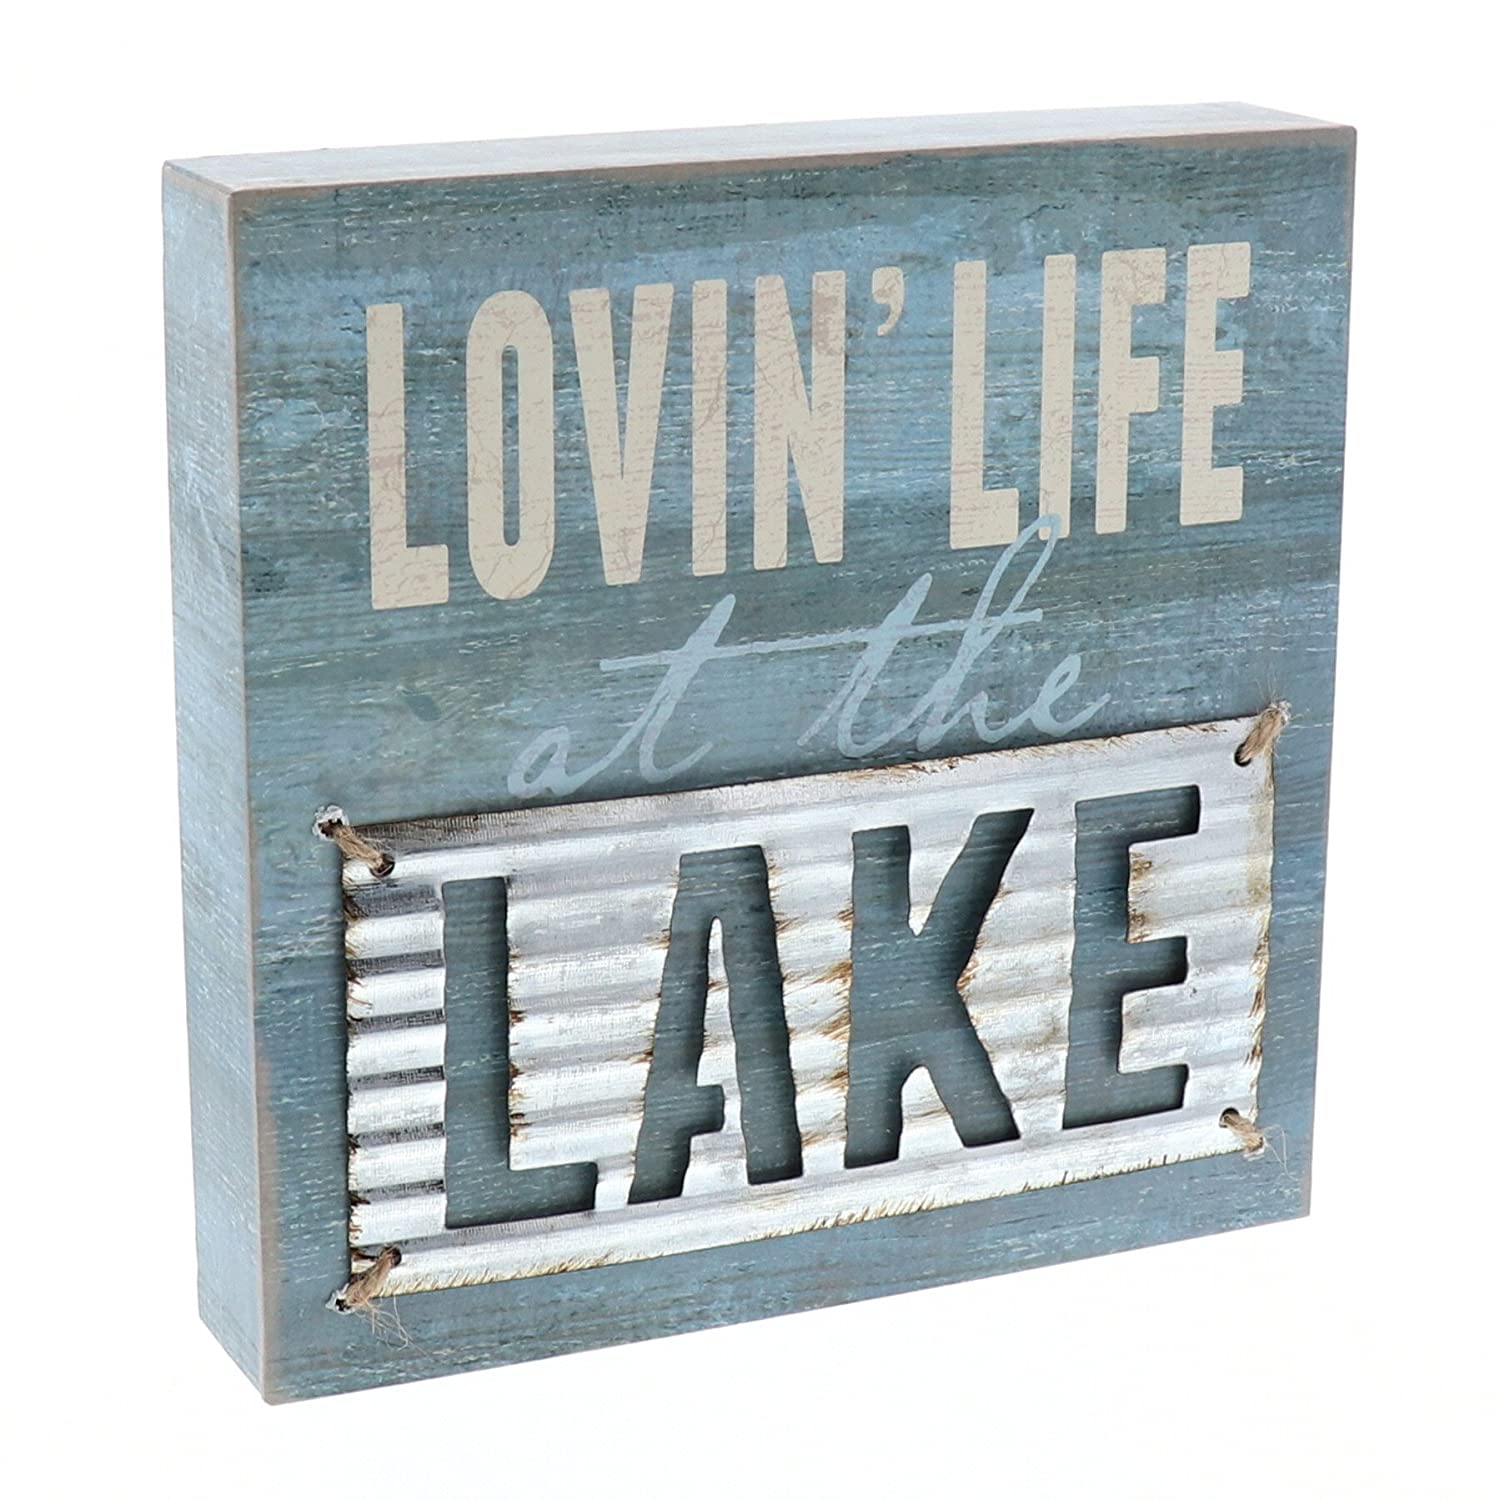 "Barnyard Designs Lovin' Life at The Lake Box Wall Art Sign, Primitive Lake House Home Decor Sign with Sayings 8"" x 8"""